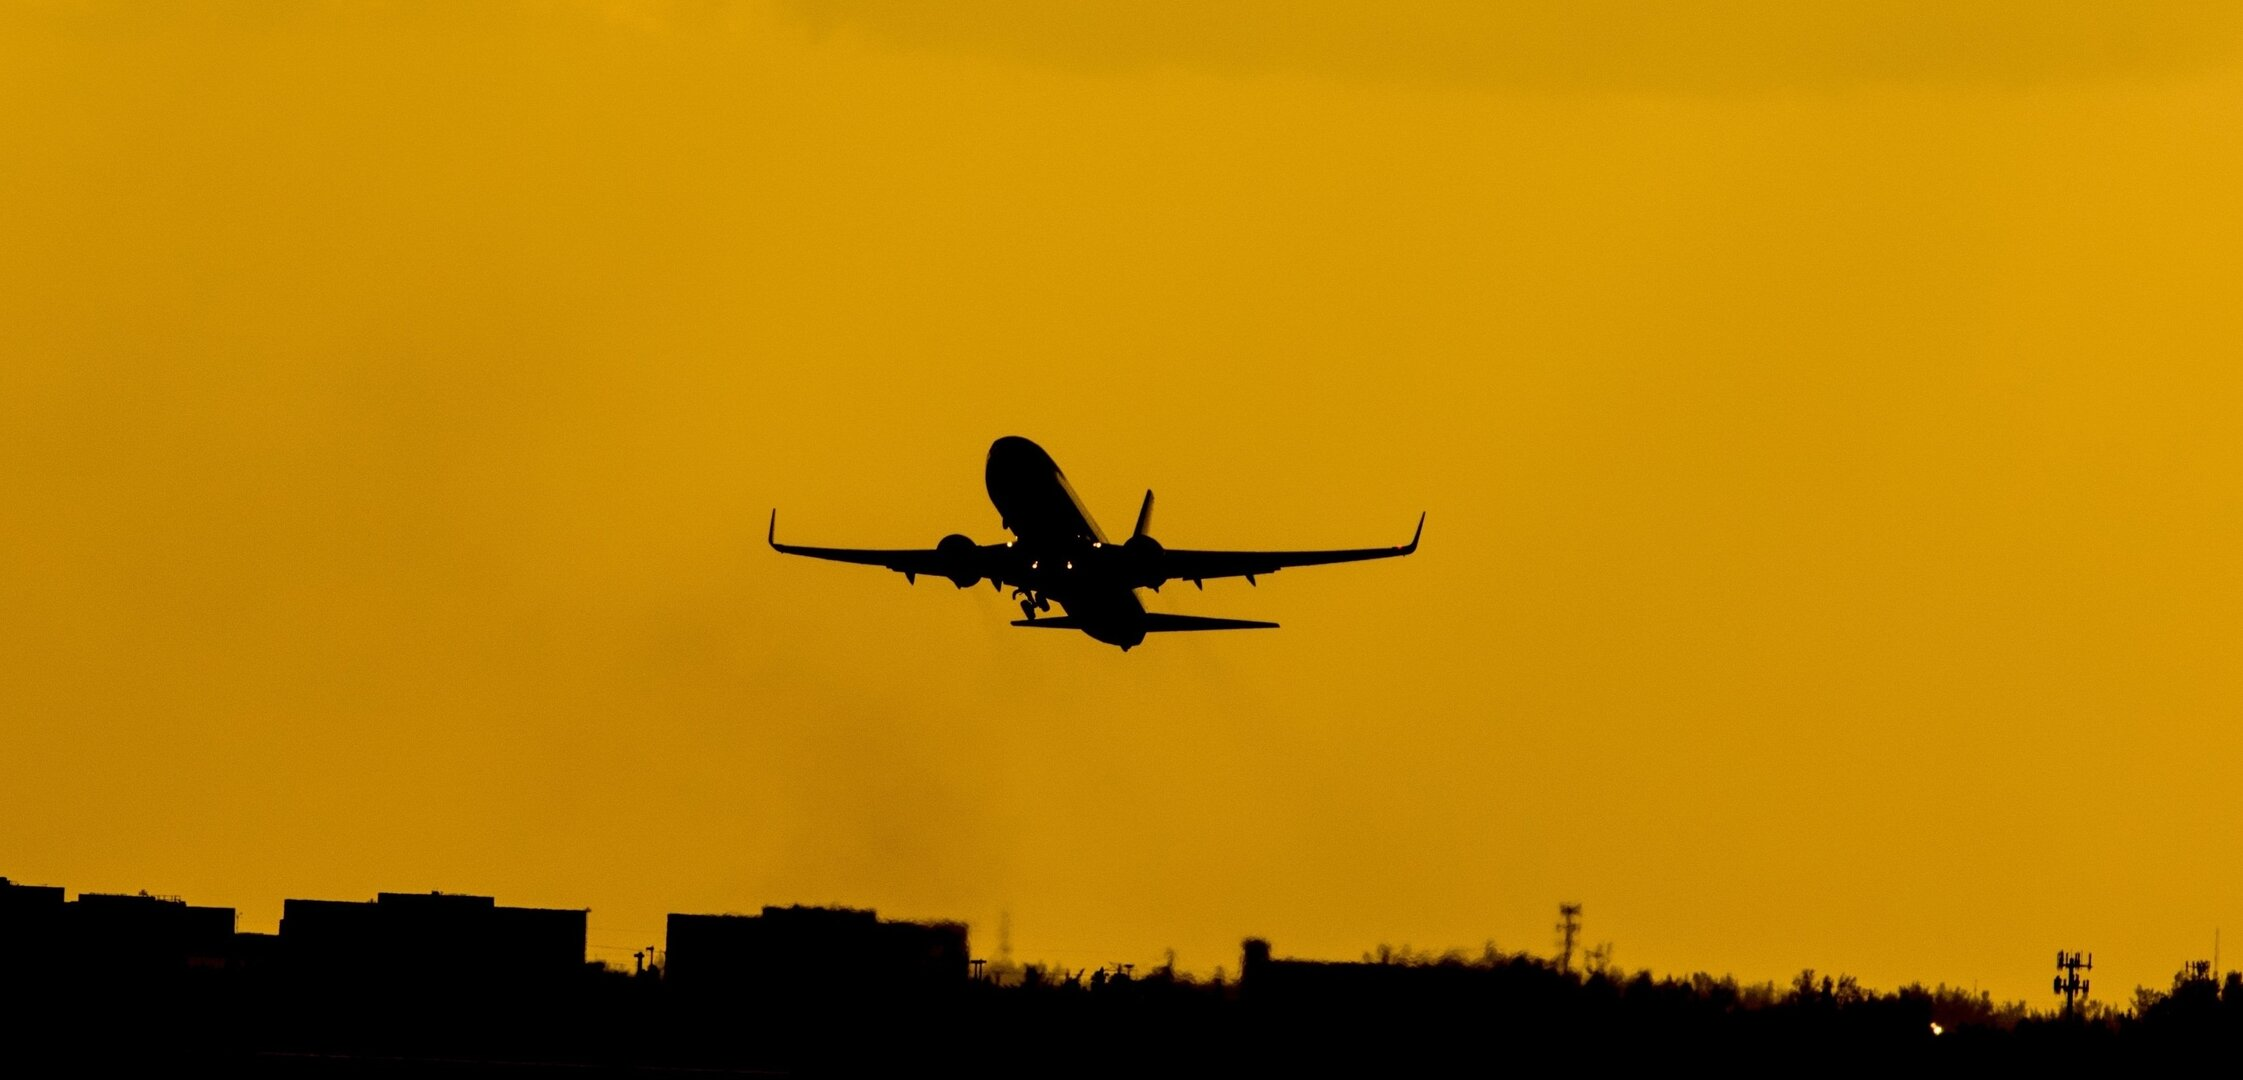 Fewer flights mean fewer atmospheric measurements